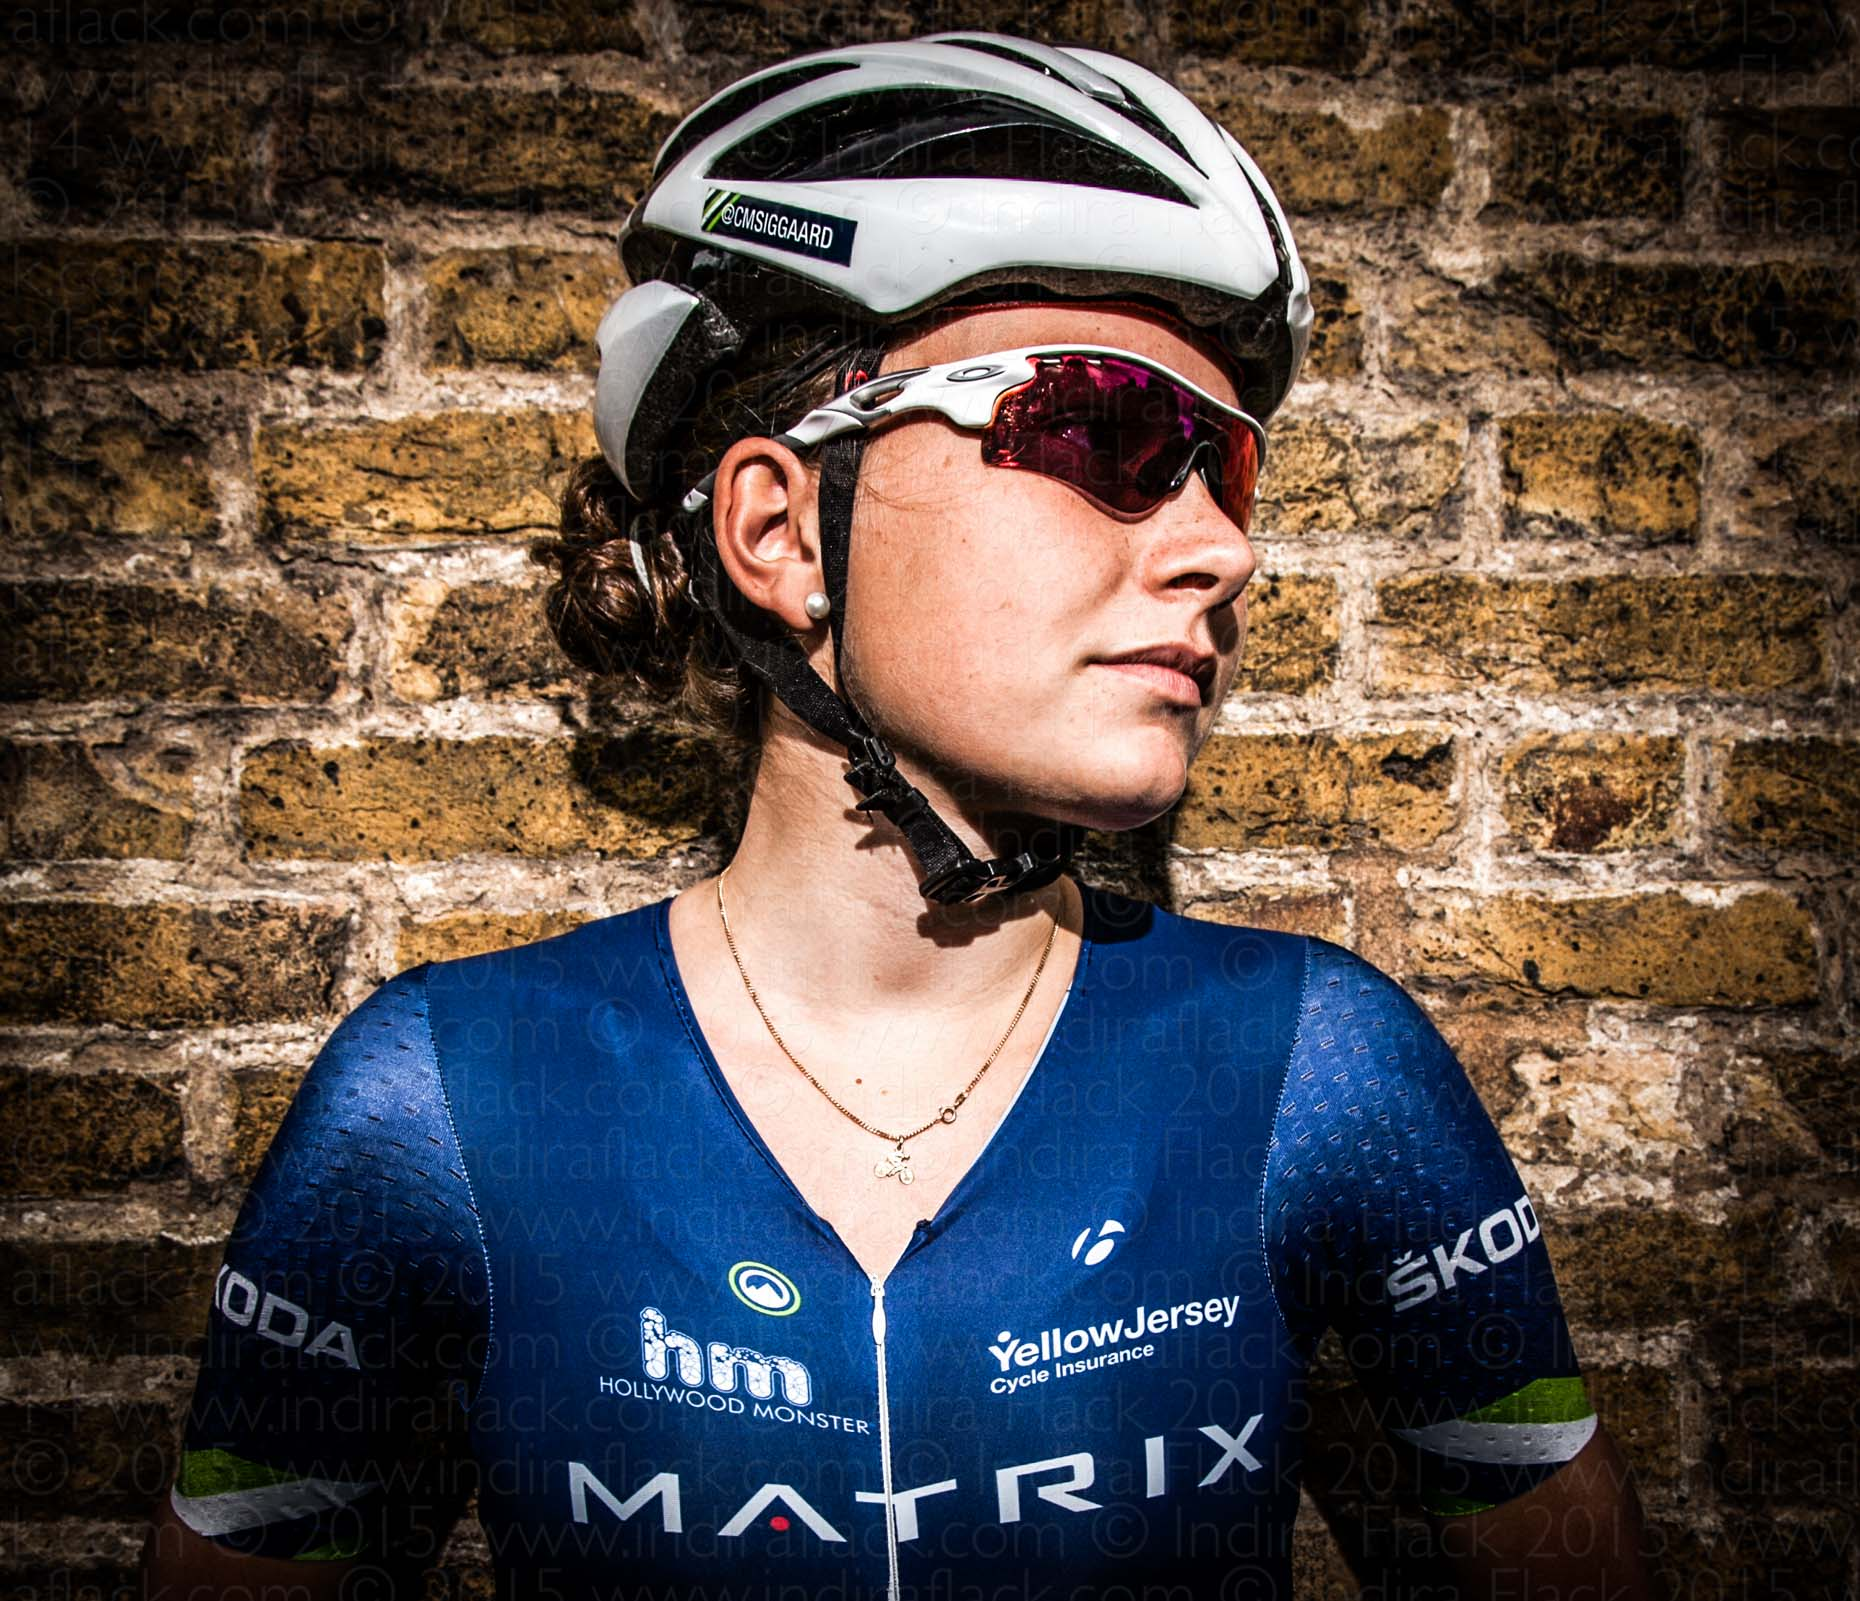 Christina Siggaard portrait by Indira Flack for Matrix Pro Cycling